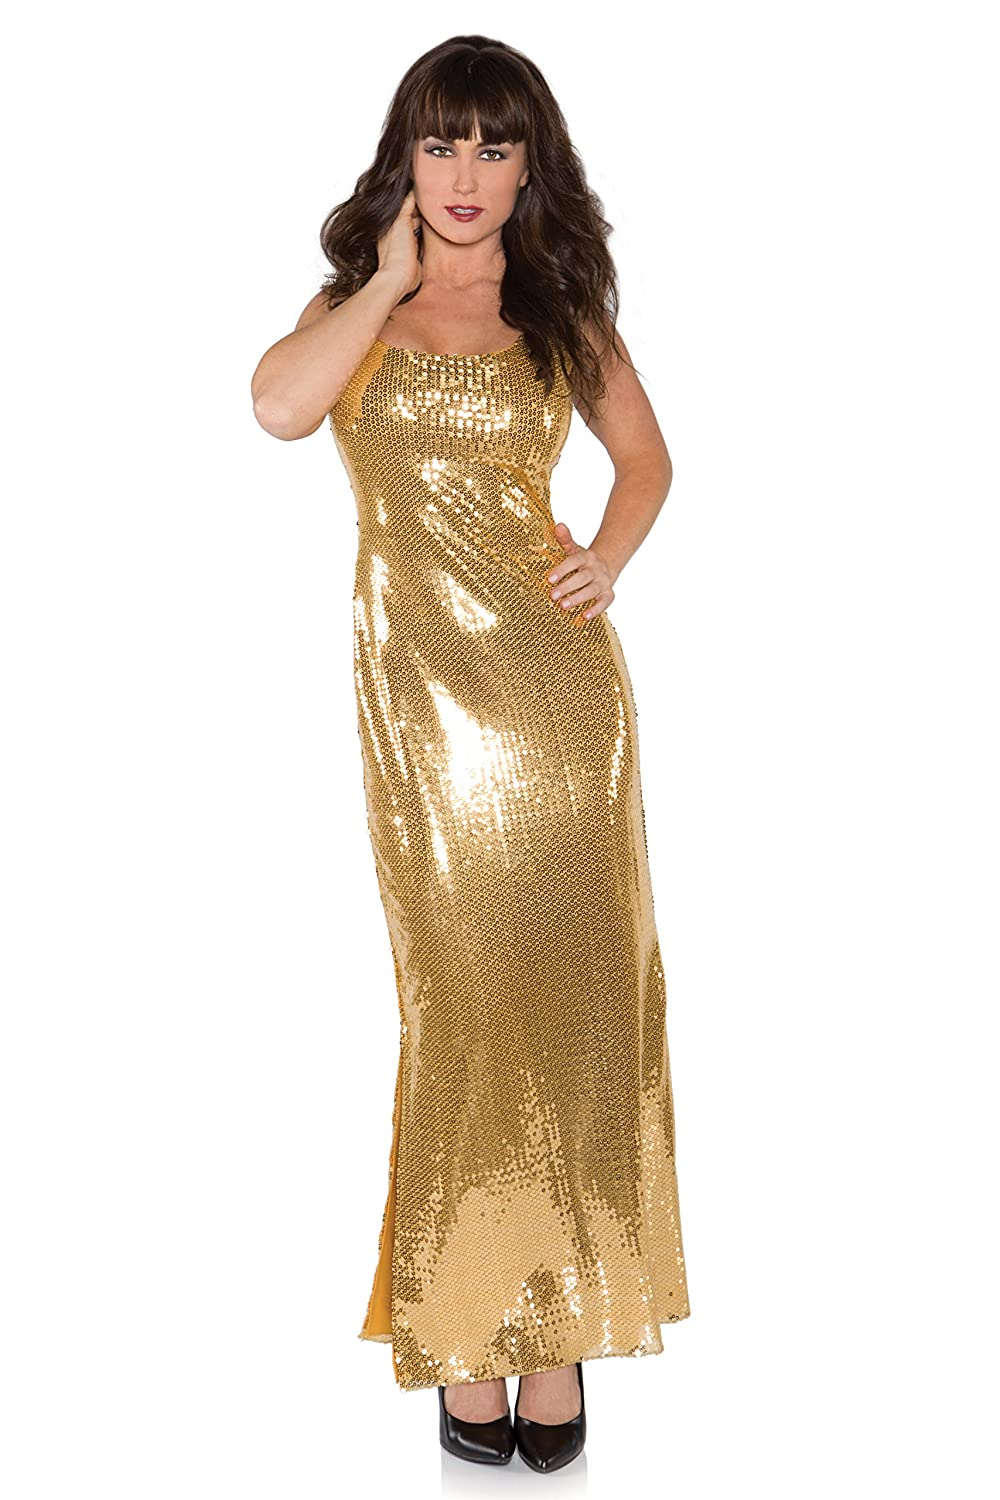 Hippie Costumes, Hippie Outfits Womens Sexy Sequin Costume Long Dress $87.00 AT vintagedancer.com